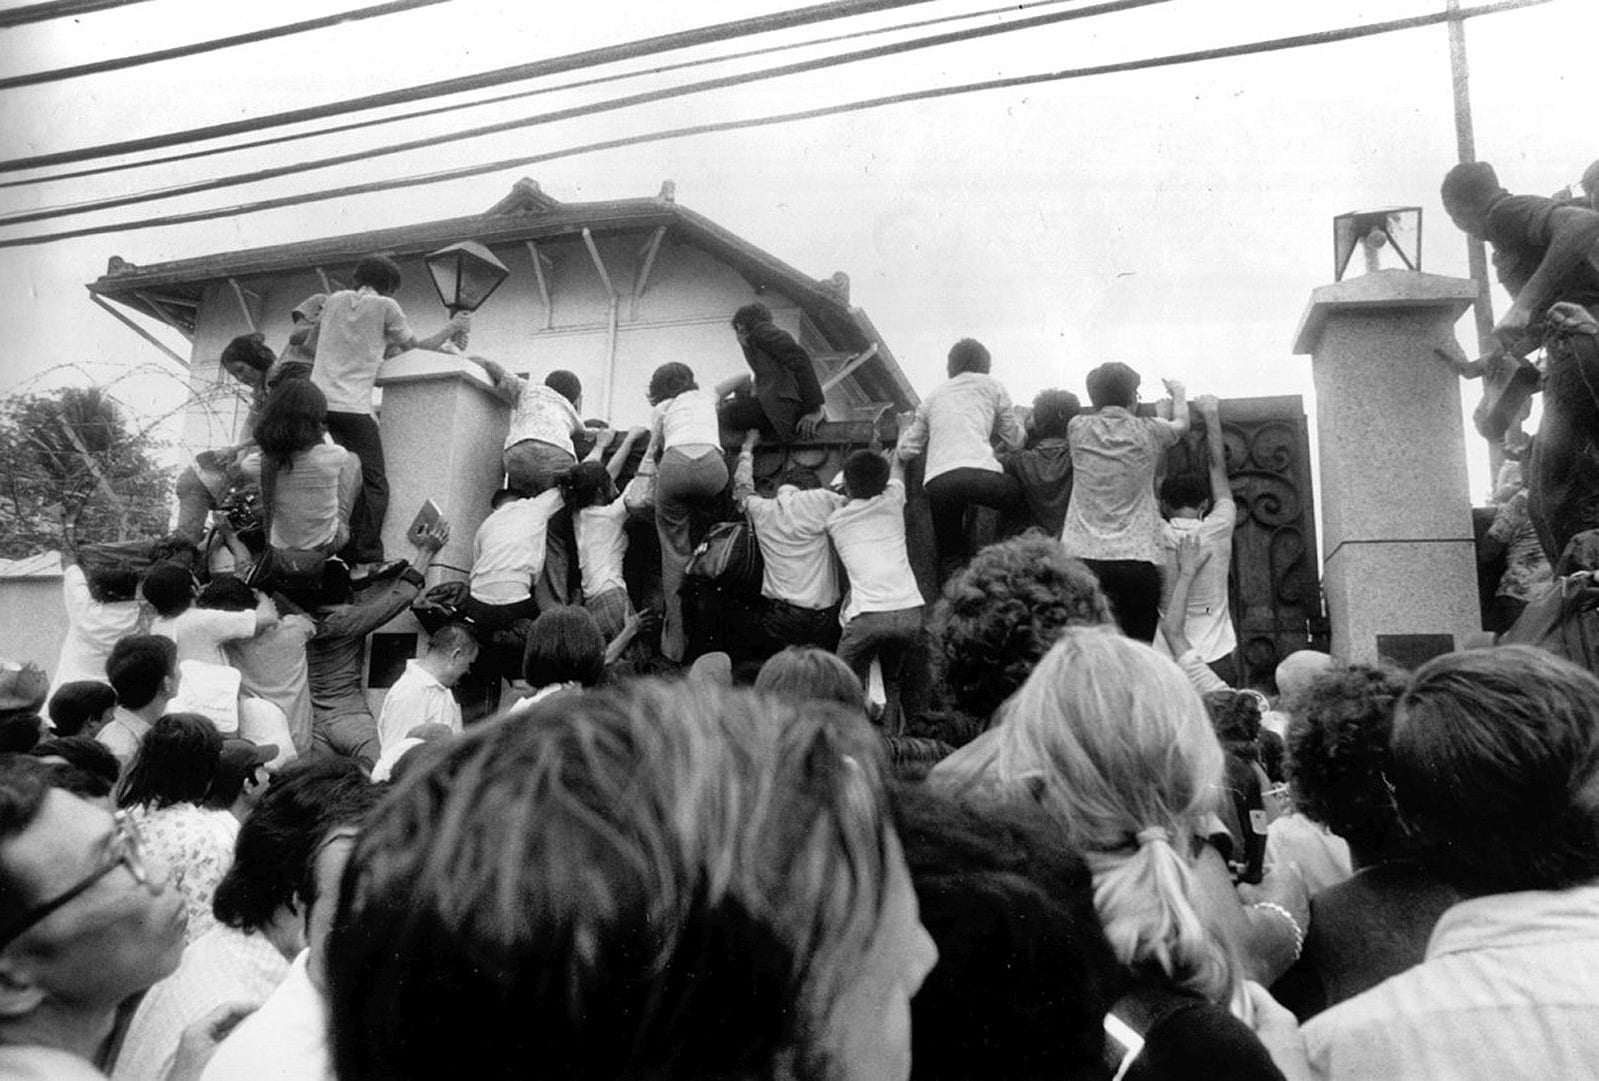 "In this April 29, 1975 file photo, South Vietnamese civilians try to scale the walls of the U.S. embassy in Saigon in an attempt to get aboard evacuation flights. AP Photo/Neal Ulevich. (CC BY-NC 2.0). Source: <a href=""https://www.flickr.com/photos/13476480@N07/40901620445/in/photolist-25jkuLv-2hNJqip-2hBAVYc-2hNRqjs-2hQDgsA-2hNDxyB-2hLZbJG-pSe3sZ-pSe3s8-276TgdW-pSdVtP-pSe3sP-qvSfoG-pRDDDZ-JzAJZU-rxdoHS-25rhnfs-2hNA9U3-pSe3rg-28ch7TT-25rhnfY-2hKRAos-2i2ezxh-2hTNo1F-2i5zEpJ-NAHUT6-2hZX3Cu-28AEAbF-qTigGR-qTG28Z-Uiecjp-qALEAR-pSdVti-qALECV-2i5tkd7-pSe3nZ-2hSwDsw-2hZuvdX-2i3e88v-qALEE8-2hnKgxw-qQLLQt-qyczEC-qQLLRv-2i5F5Mz-2hWXSWL-2hDzLbd-2hBzUpn-2i5yoPW-2i4FPxc"">flickr.com</a>"